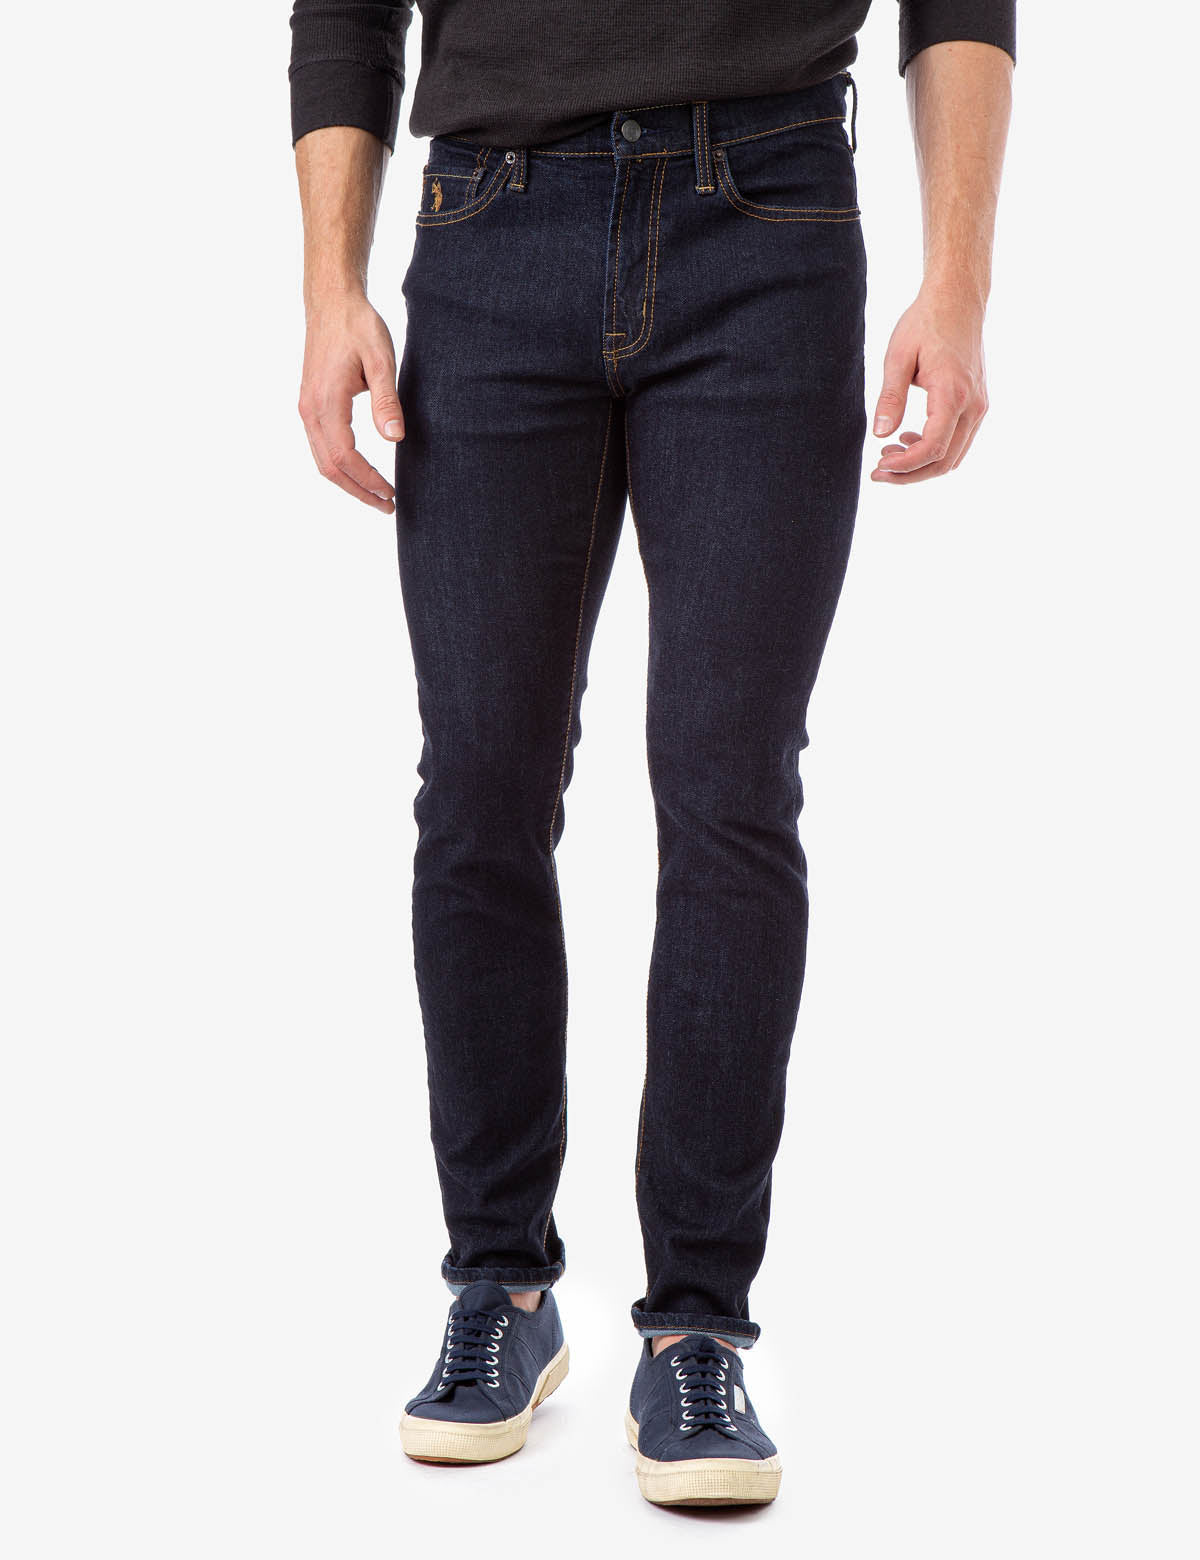 SKINNY STRETCH FIT JEANS - U.S. Polo Assn.